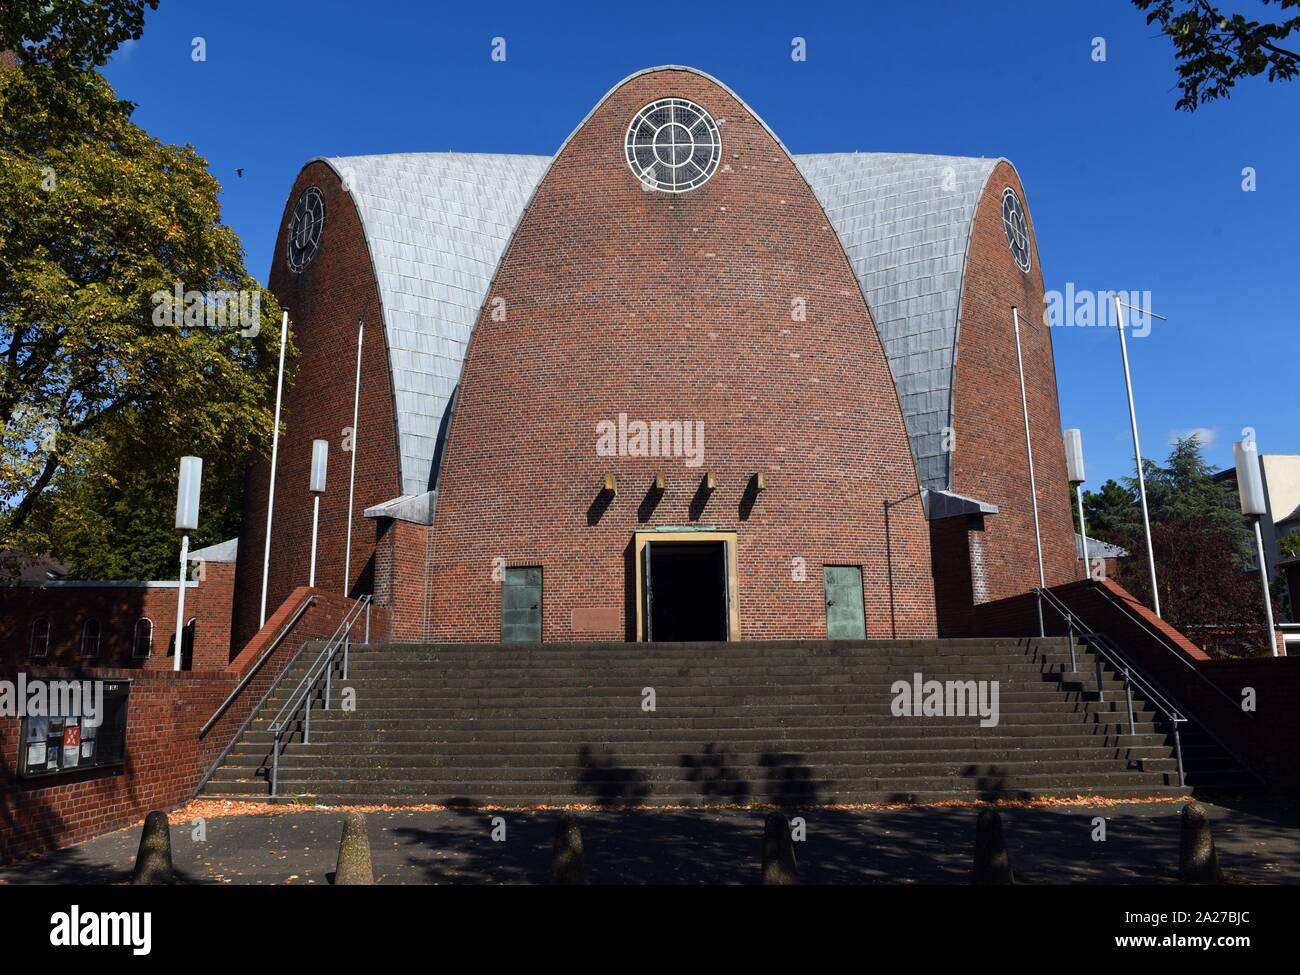 The Catholic Church St Engelbert It Was Built From 1930